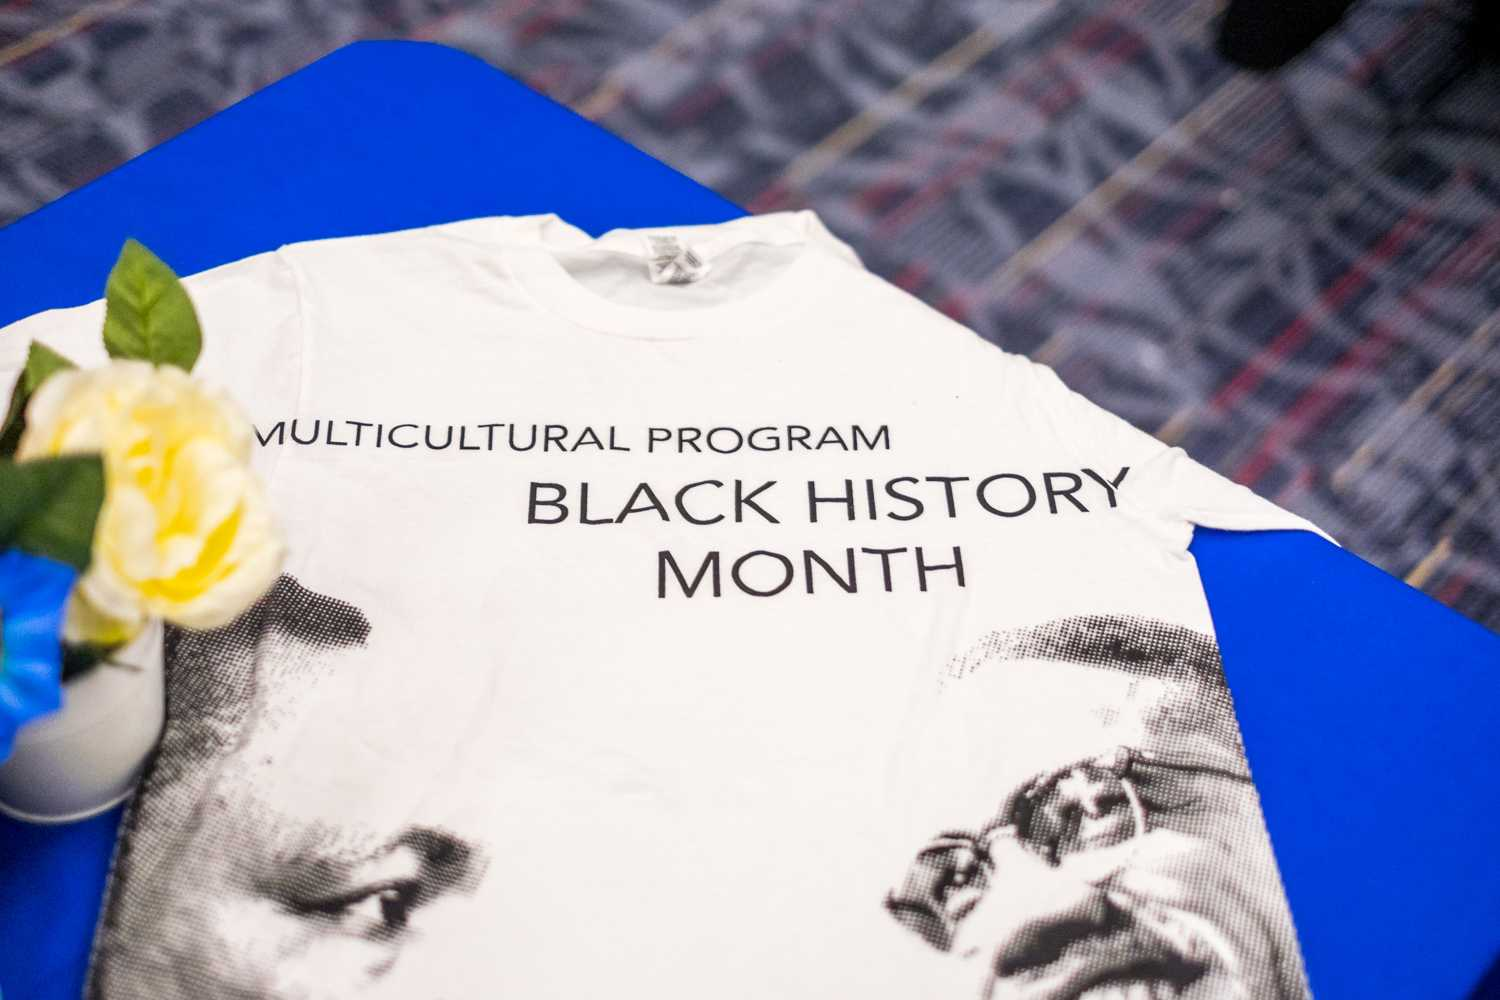 House of Black Culture was an event organized by Multicultural Programming held February 12th.